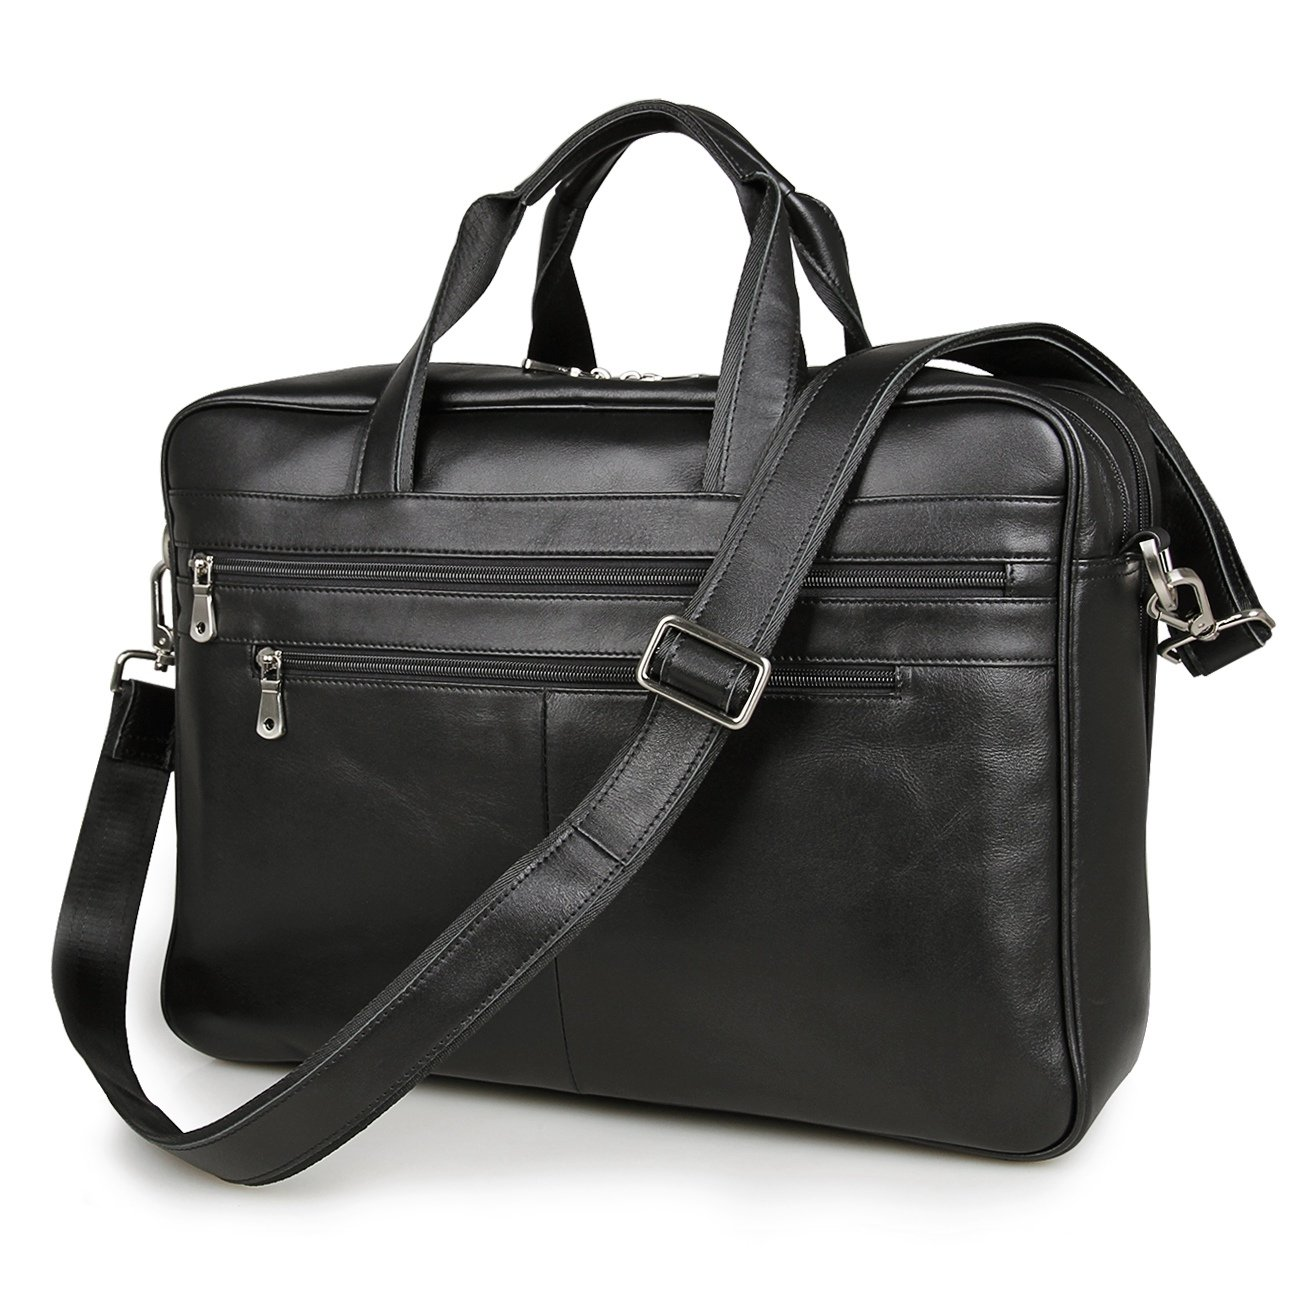 Black 17'' Laptop Attache Briefcase Professional Real Leather Tote Business Bag Shoulder Messenger Bag